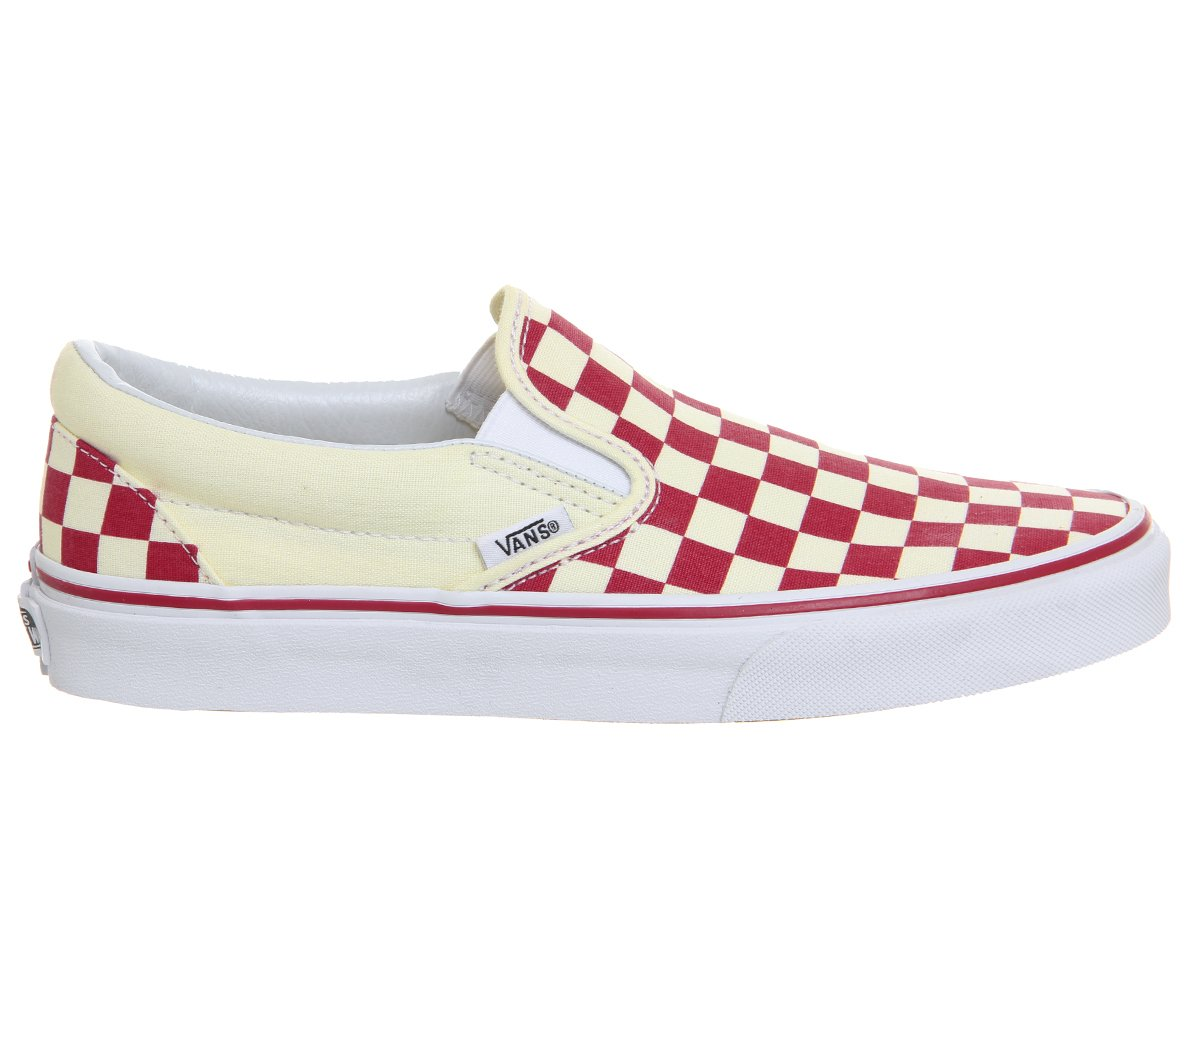 [バンズ] VANS スニーカー Classic Slip-on B01MT19L43 10.5 Women / 9 Men M US|( Primary Checker) Racing Red / White ( Primary Checker) Racing Red / White 10.5 Women / 9 Men M US